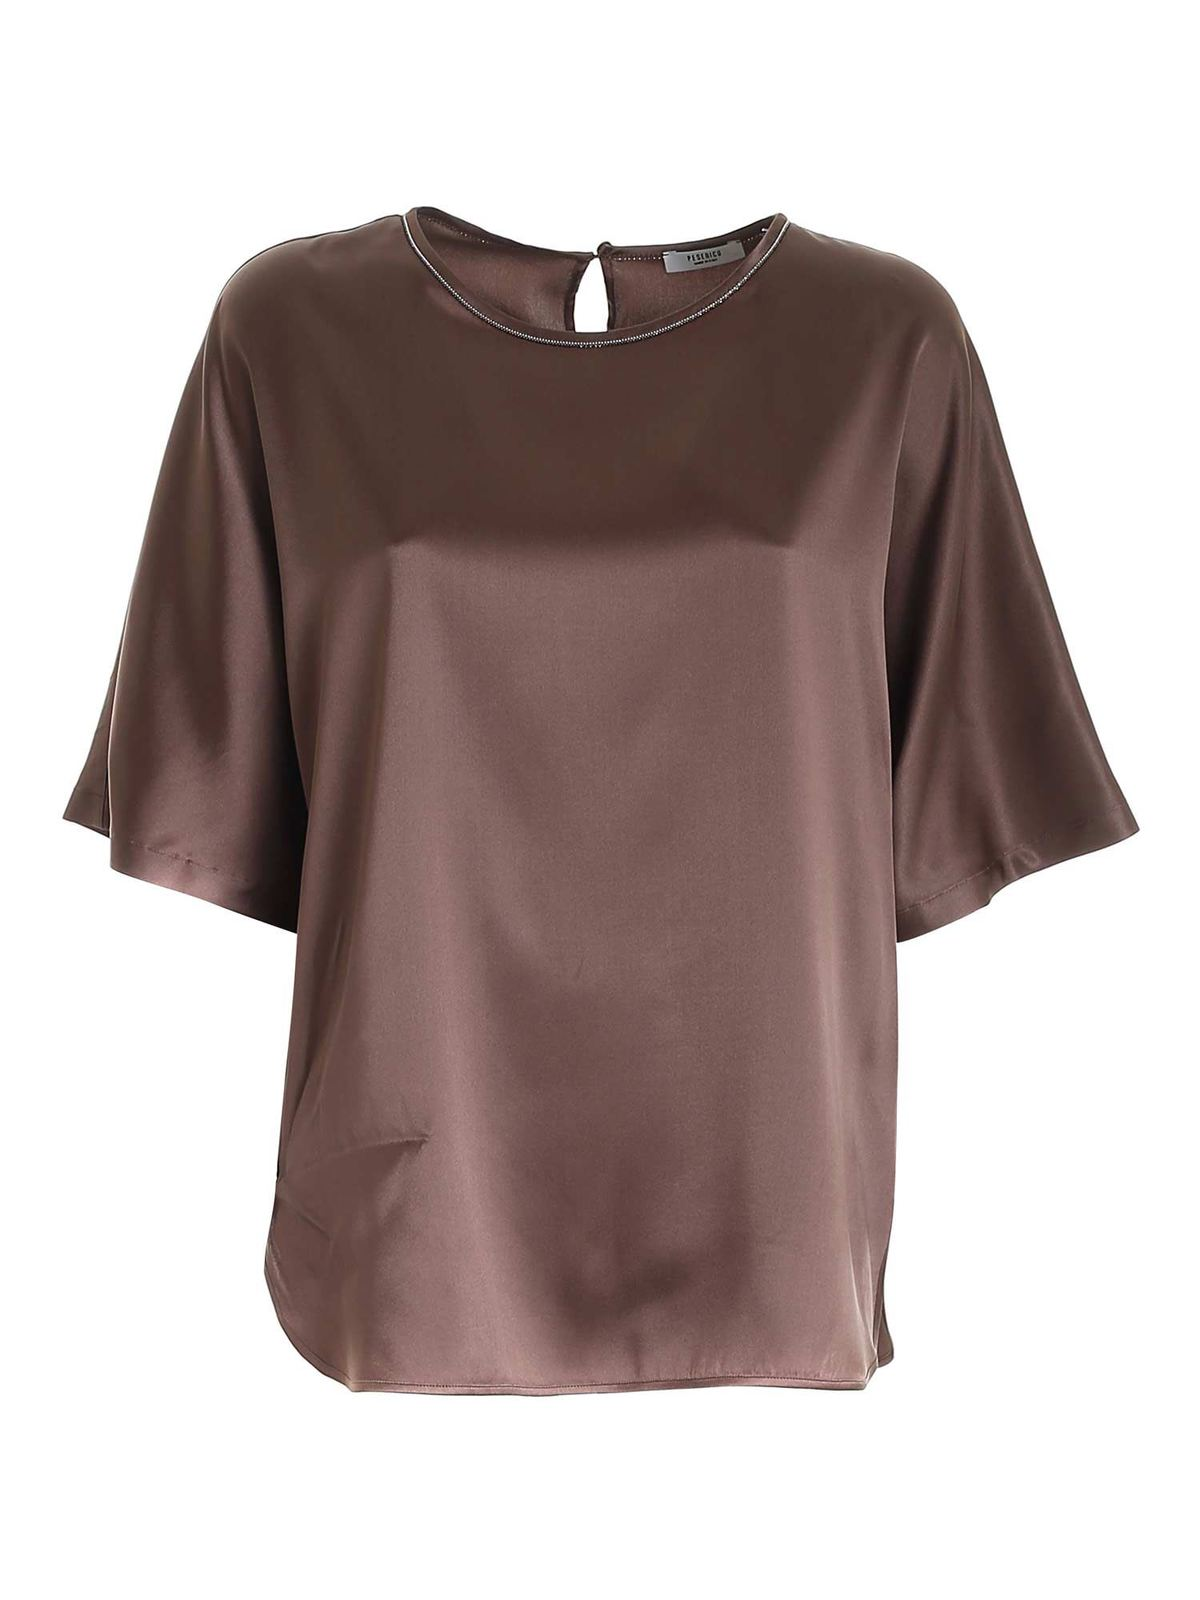 Peserico MICRO BEADS BLOUSE IN BROWN